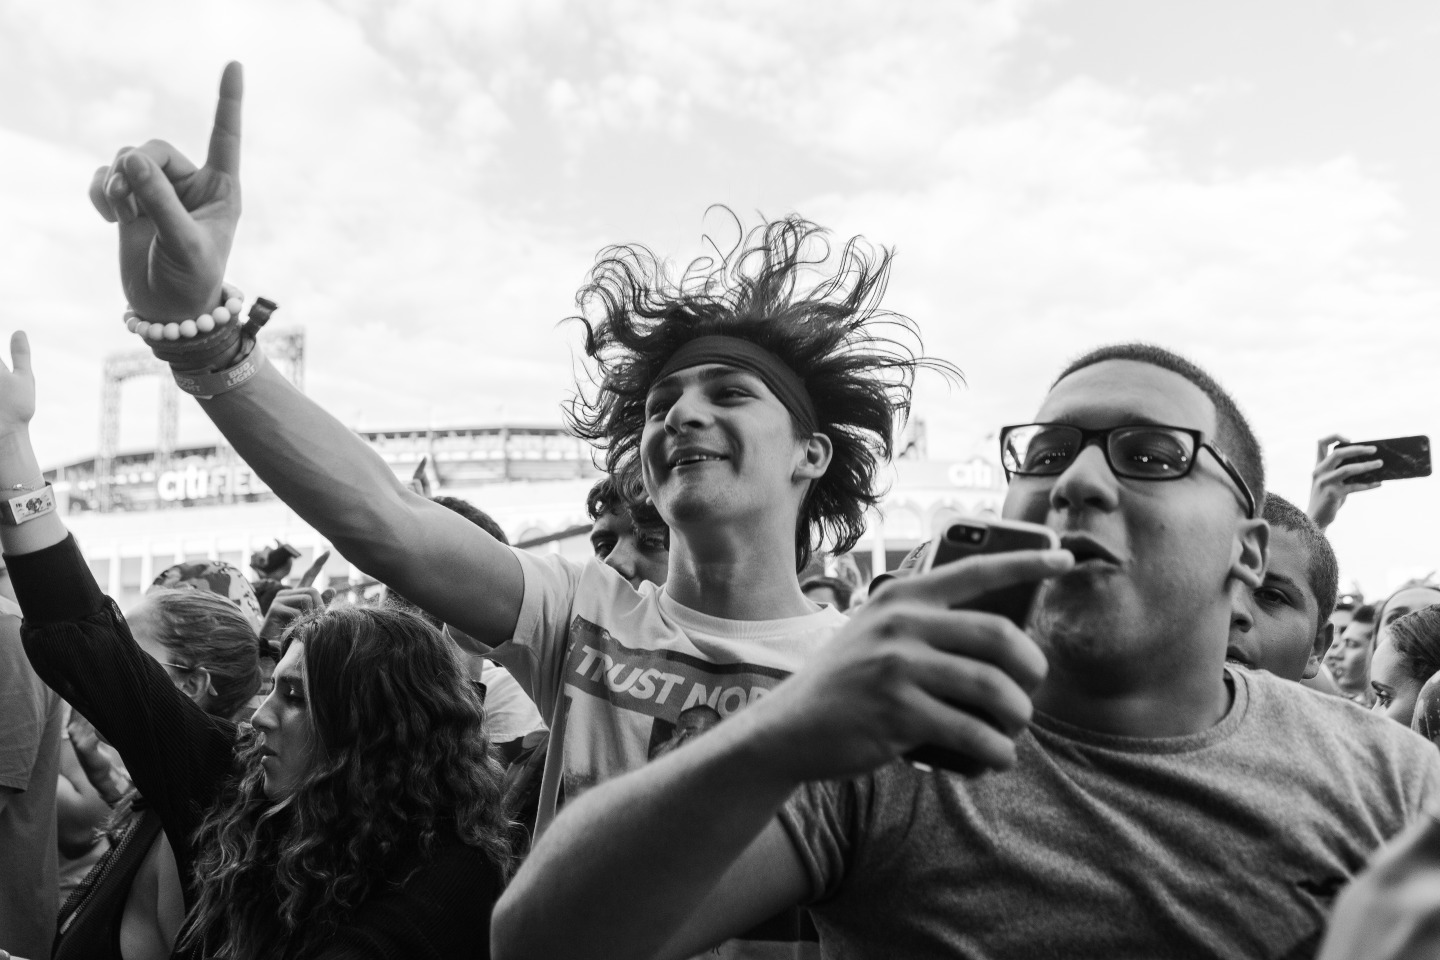 You Need To Look At These Insane Photos From The Meadows Festival